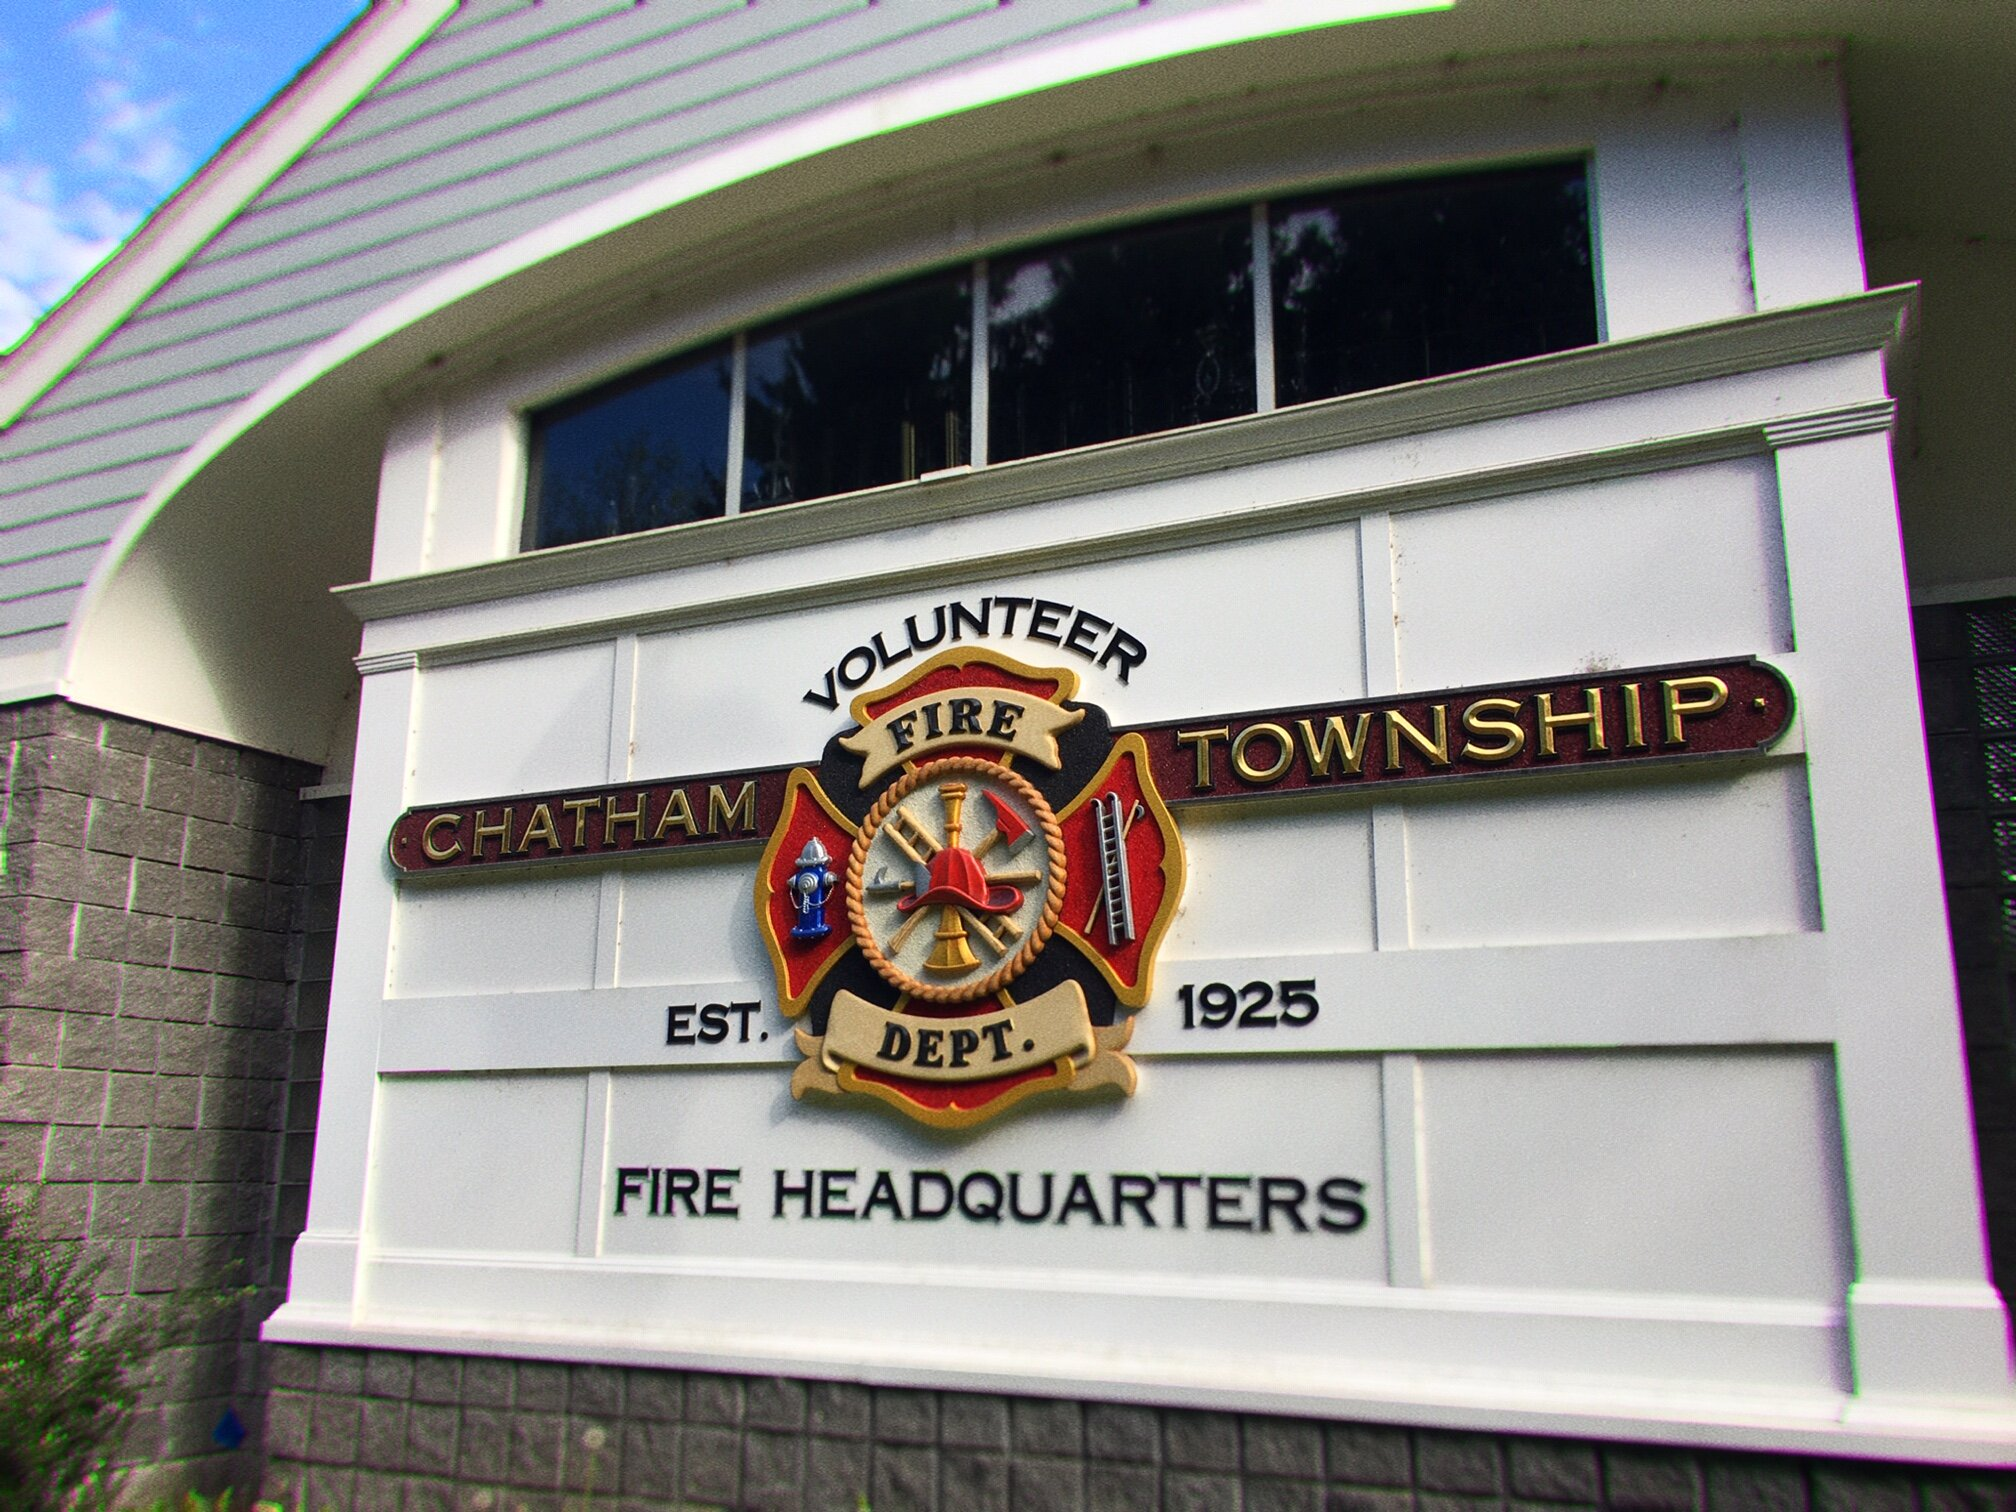 We are very proud to announce that our sign for Chatham Township Volunteer Fire Dept has been awarded 2nd place for best Original Design and Fabrication, Non-Illuminated, Small Shop in the annual International Sign Competition hosted by Signs of the Times Magazine. Thank You Signs of the Times. To take a look at the other award winners, visit https://read.nxtbook.com/st_media/signs_of_the_times/signs_of_the_times_september_/best_original_design_non_illu.html